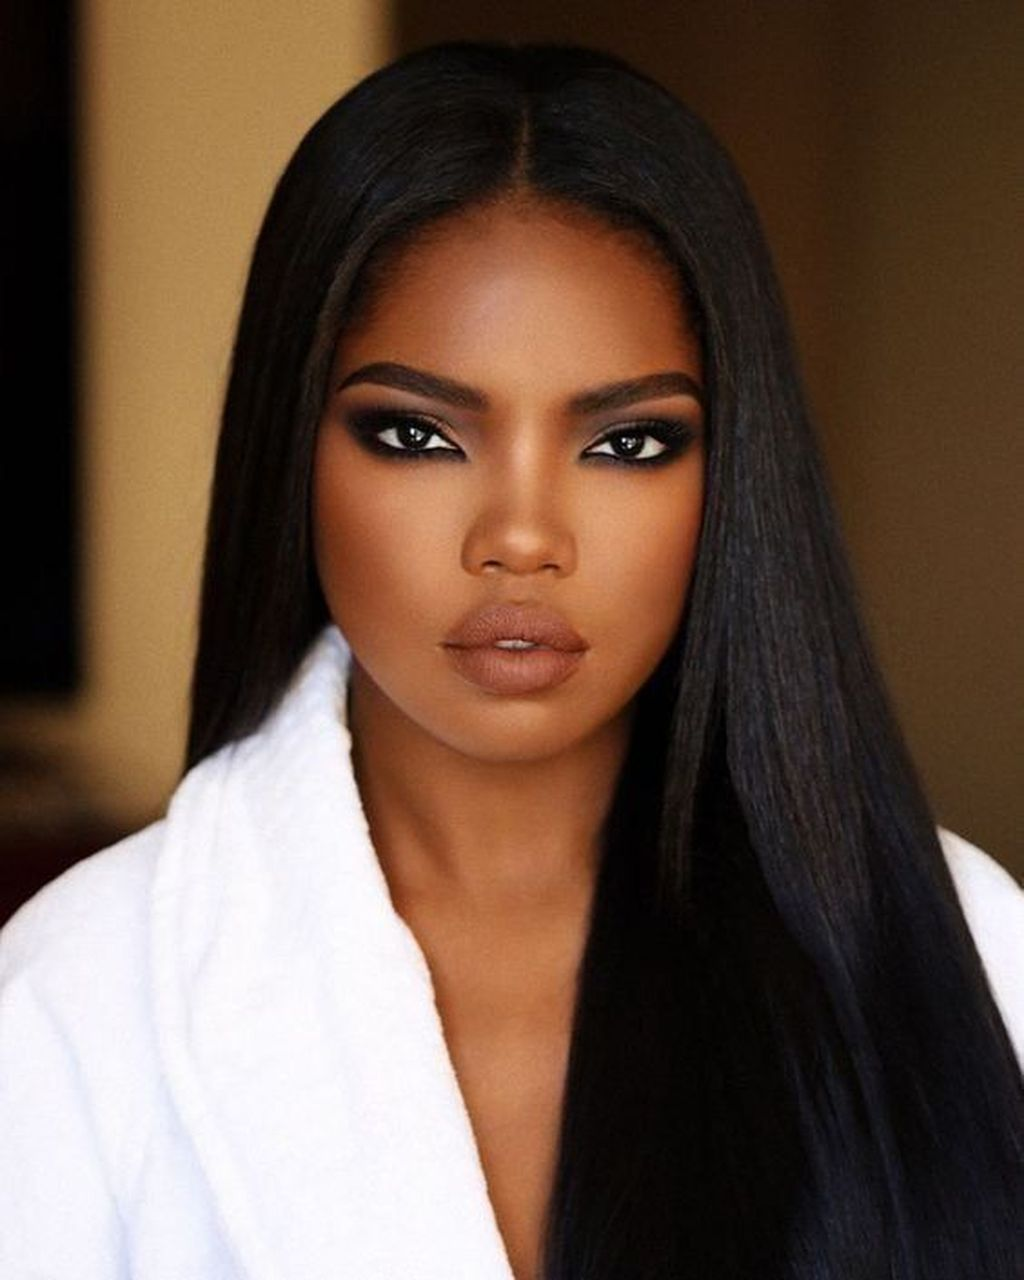 30+ Beautiful Women Makeup Ideas To Look Different And Amazing This Year -   14 hair Women makeup ideas